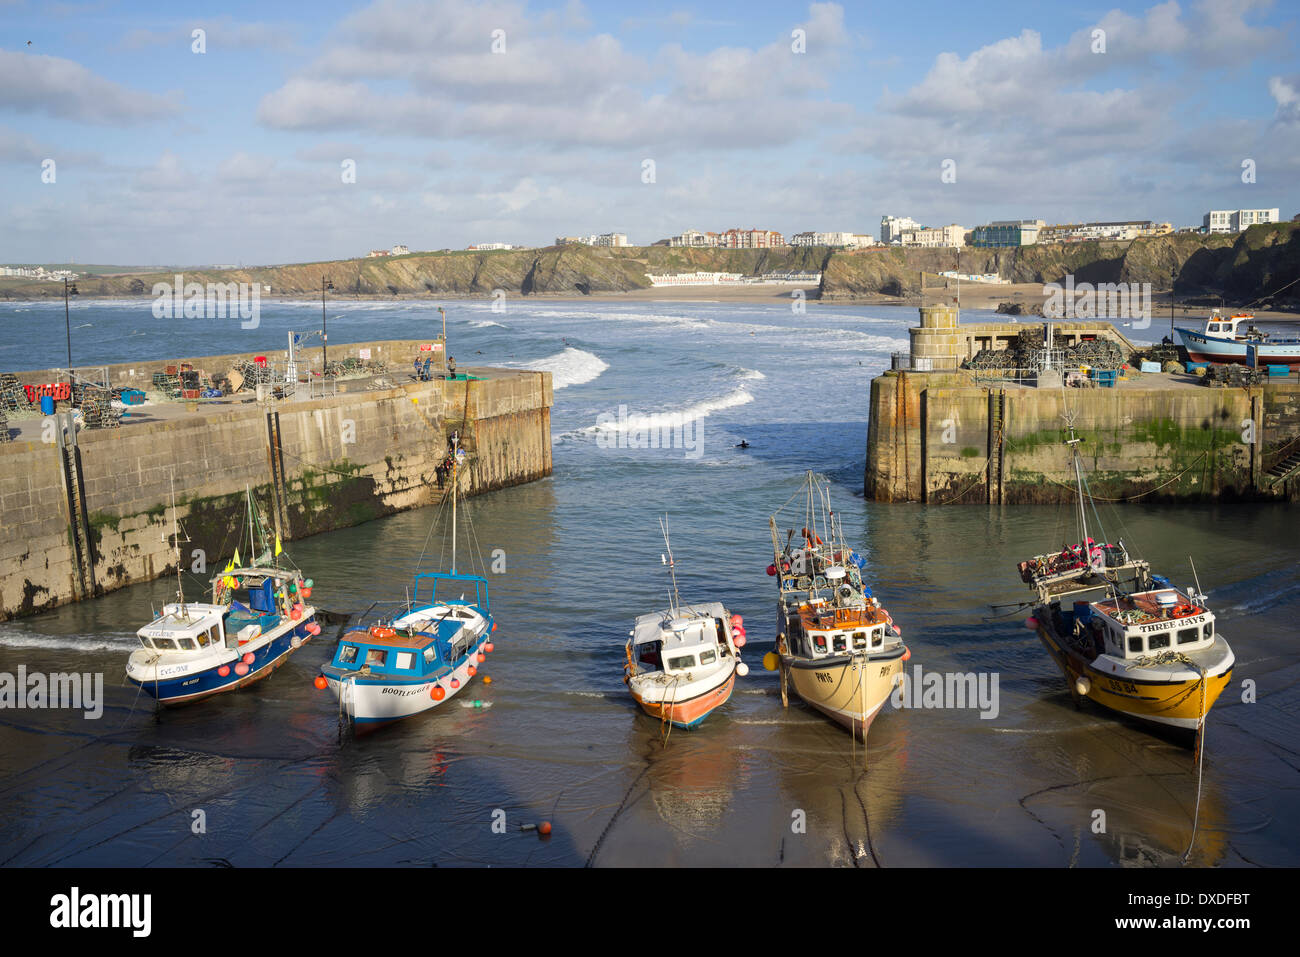 Newquay harbour boats incoming tide, Cornwall England. - Stock Image